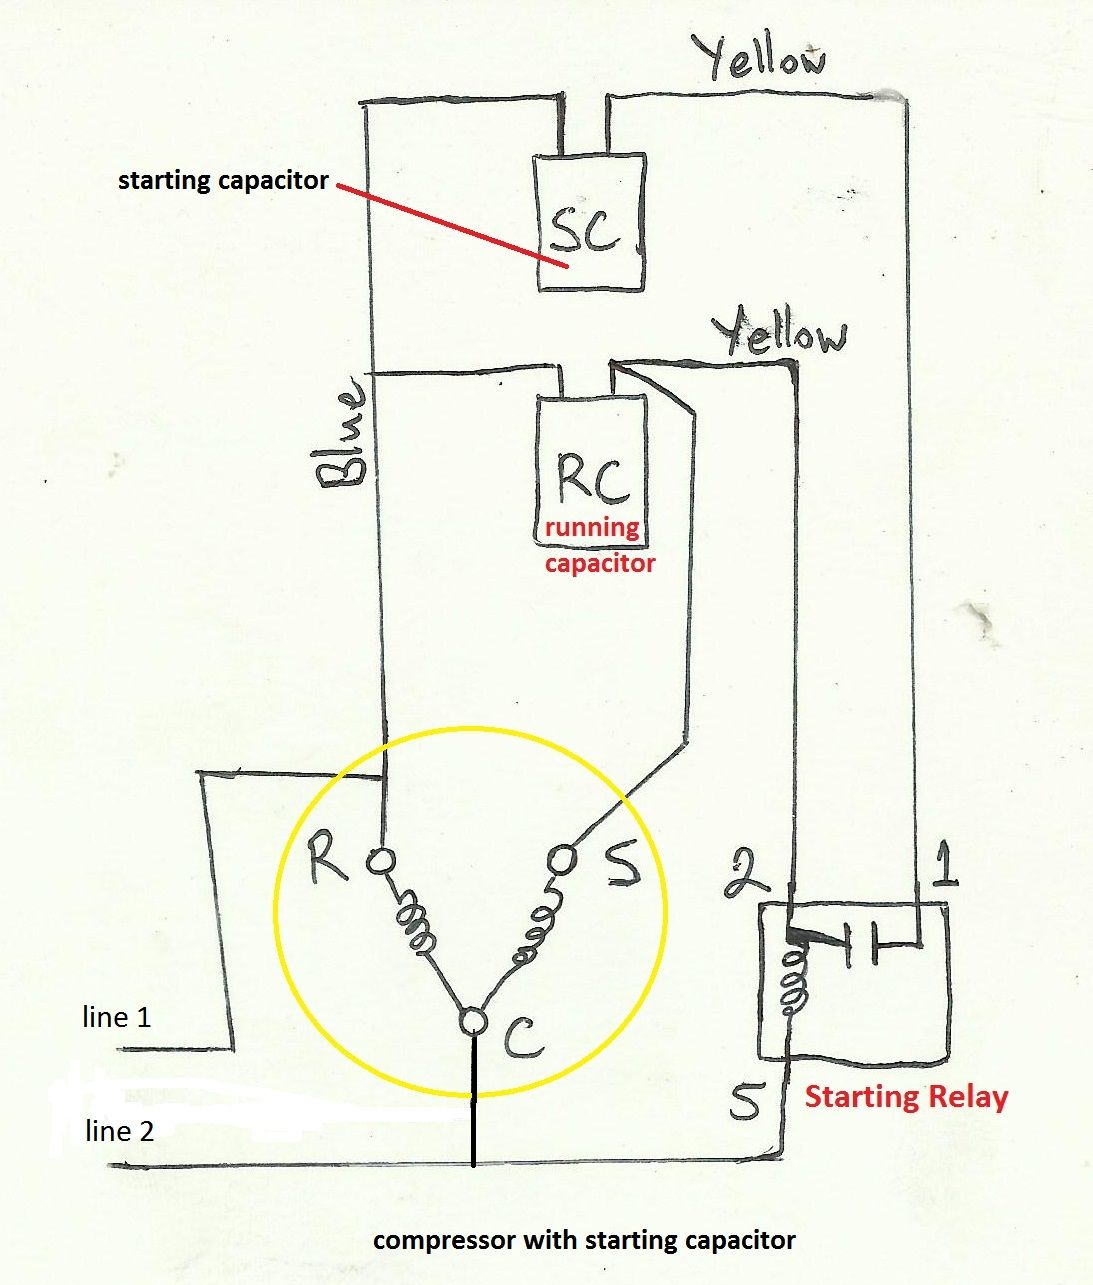 hight resolution of air compressor capacitor wiring diagram before you call a ac repair man visit my blog for some tips on how to save thousands in ac repairs